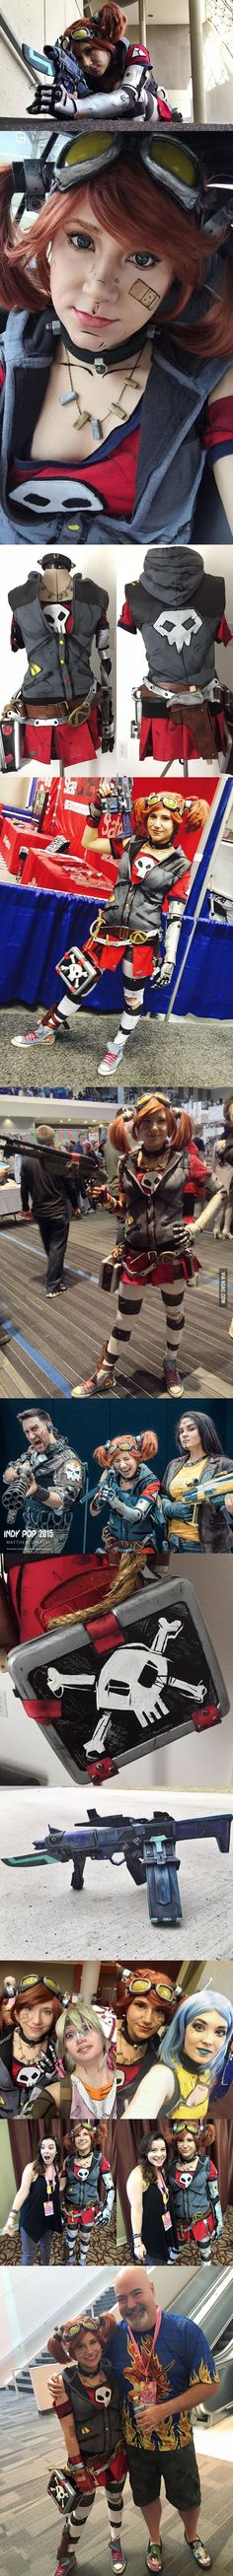 Borderlands 2 cosplay - Gaige